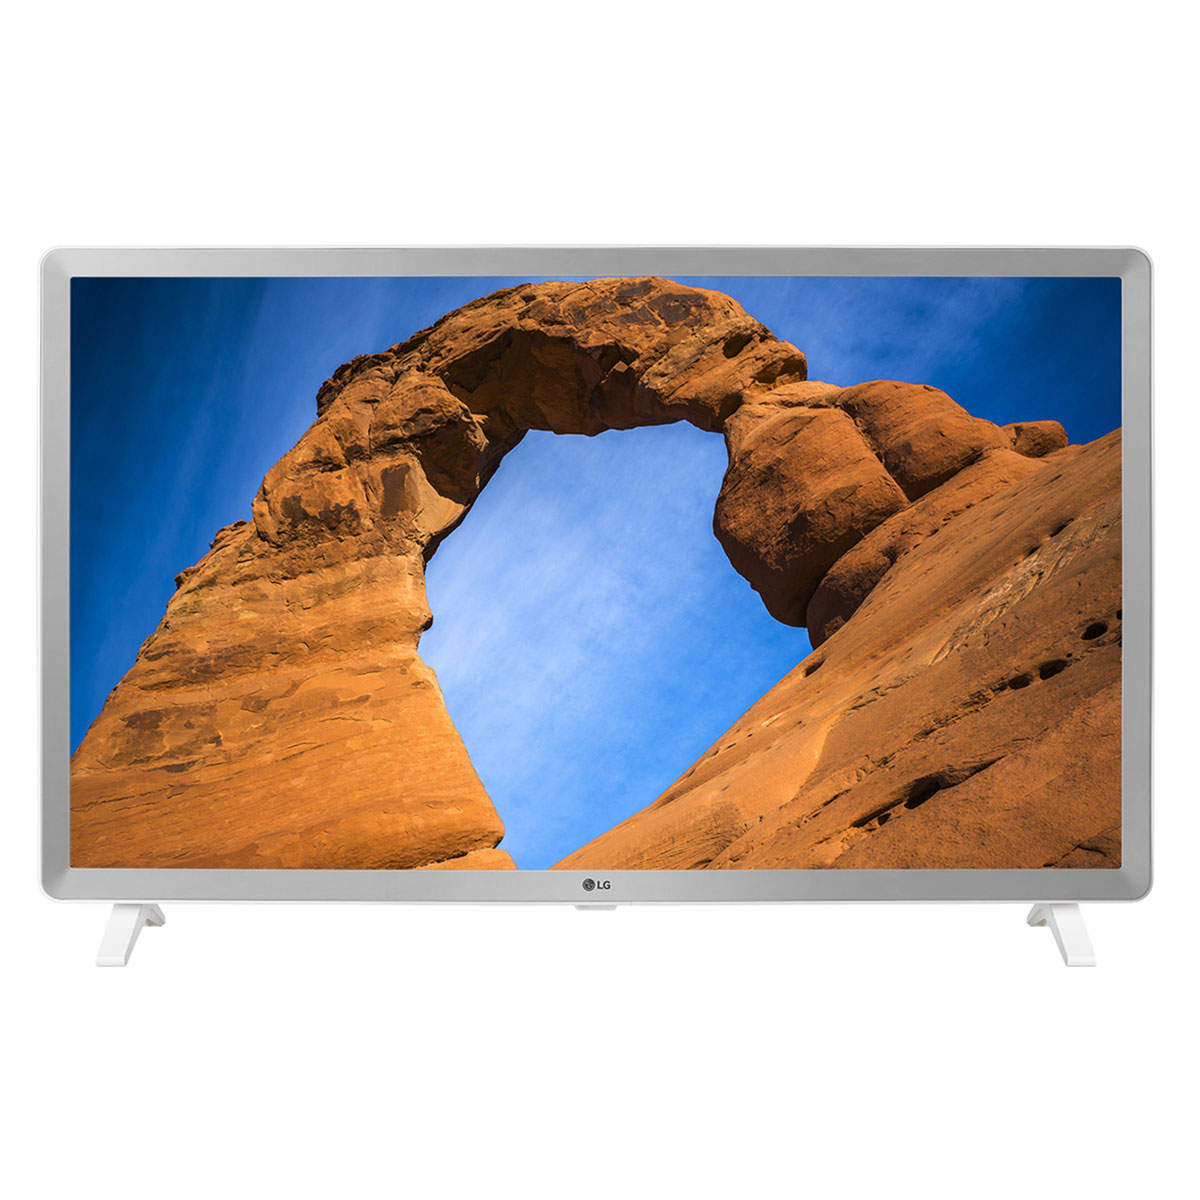 "TV LG 32LK6200 Téléviseur LED Full HD 32"" (81 cm) 16/9 - 1920 x 1080 pixels - HDTV 1080p - HDR - Wi-Fi - Bluetooth - 50 Hz"